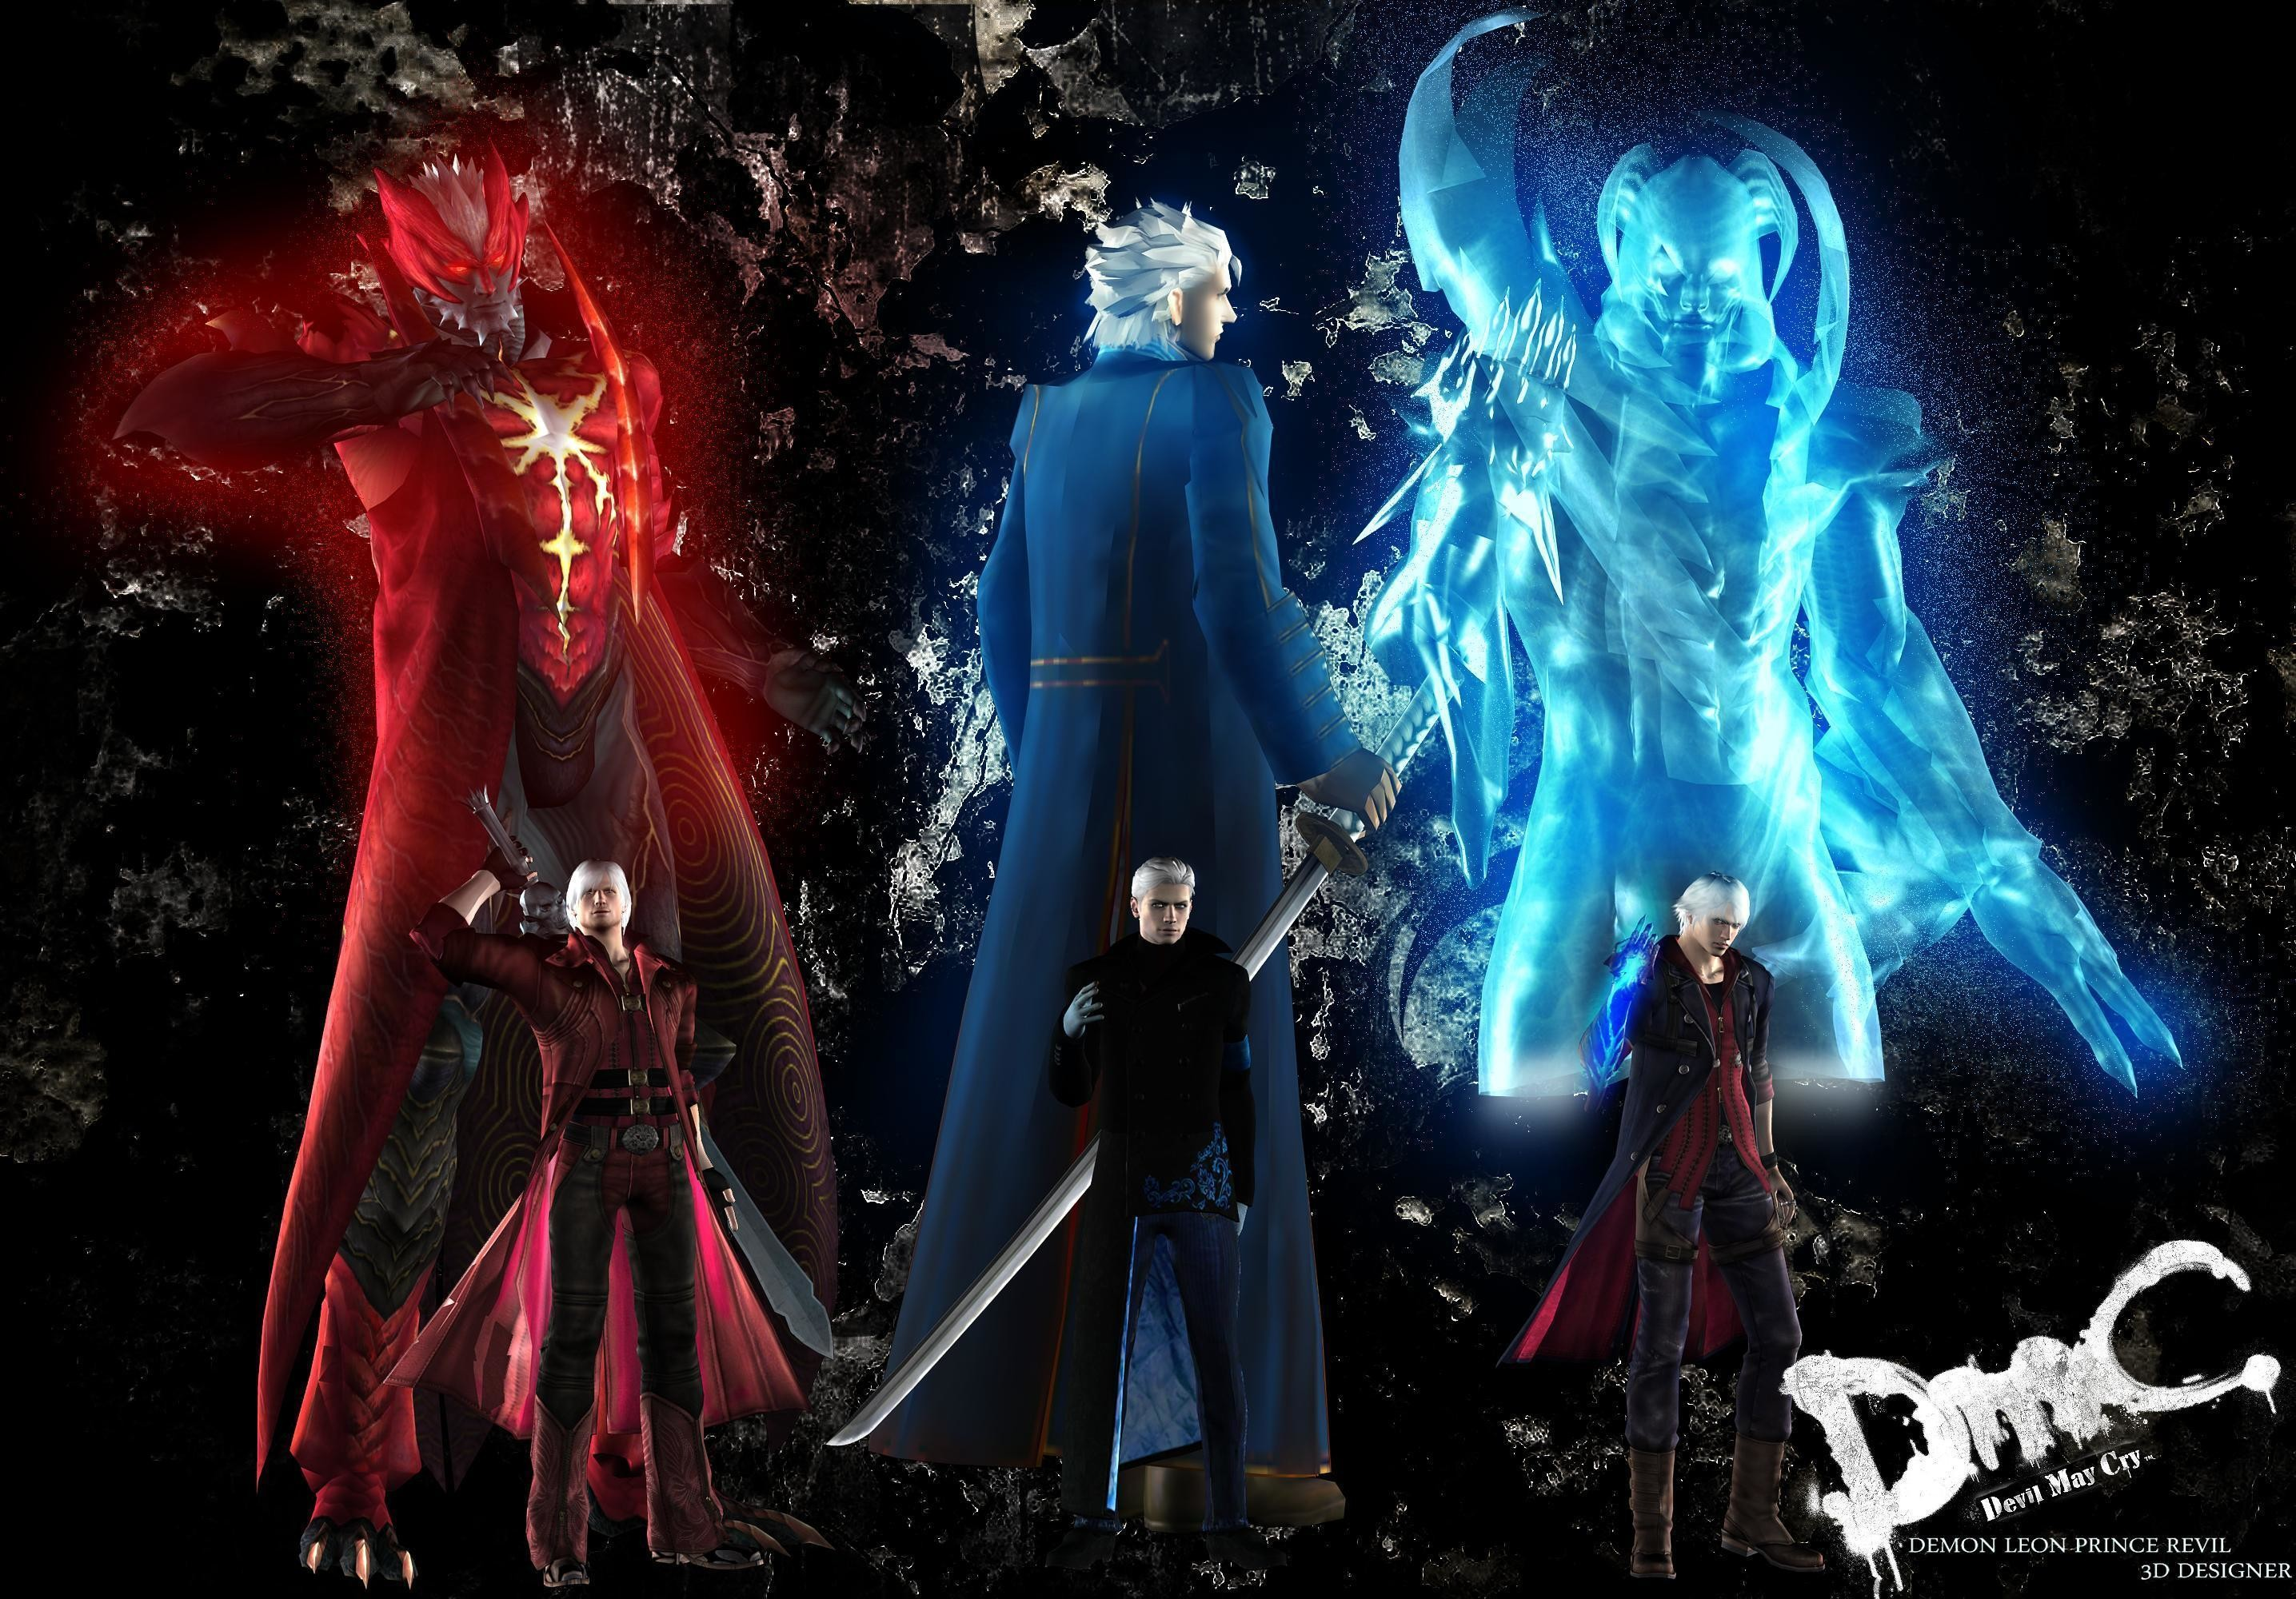 dante devil may cry 5 wallpaper wwwpixsharkcom